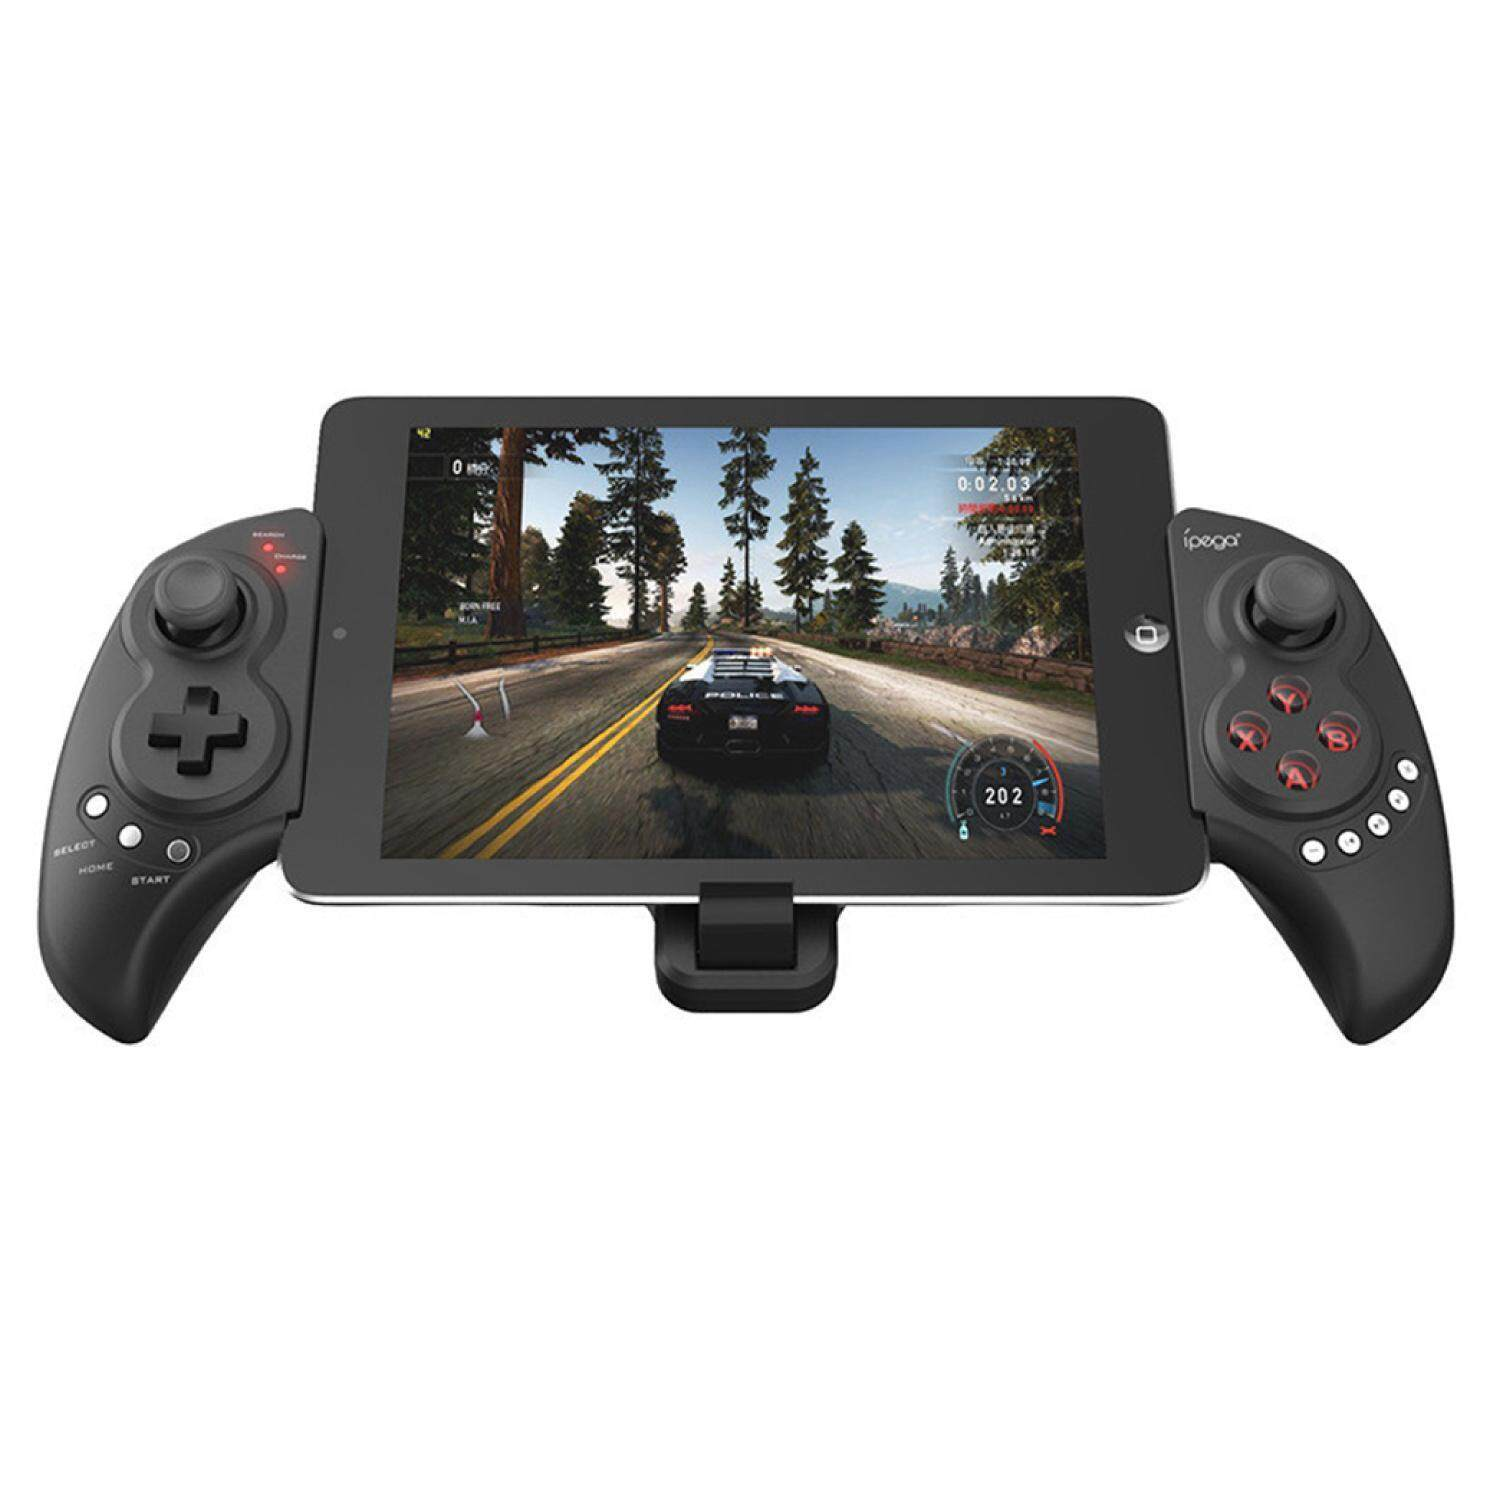 Kehebatan Ipega Pg 9067 Bluetooth Gamepad Wireless Joystick Android Apple Iphone 5 16gb Grs Intl Hitam Tongxulife R Game Controller For And Ios